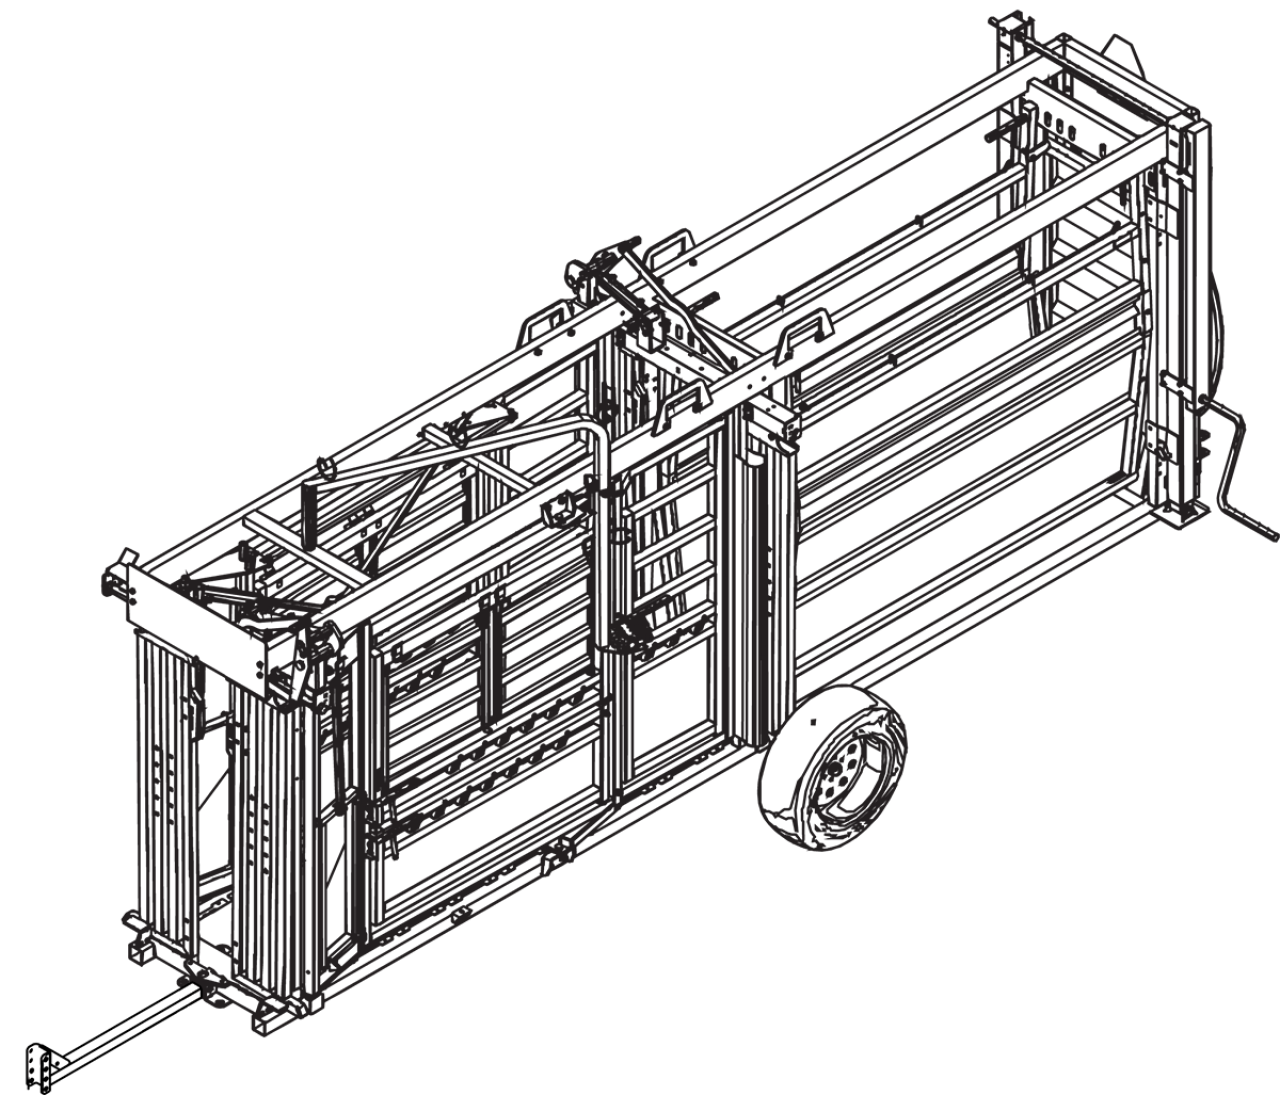 CAD drawing of the hydraulic portable cattle chute & alley